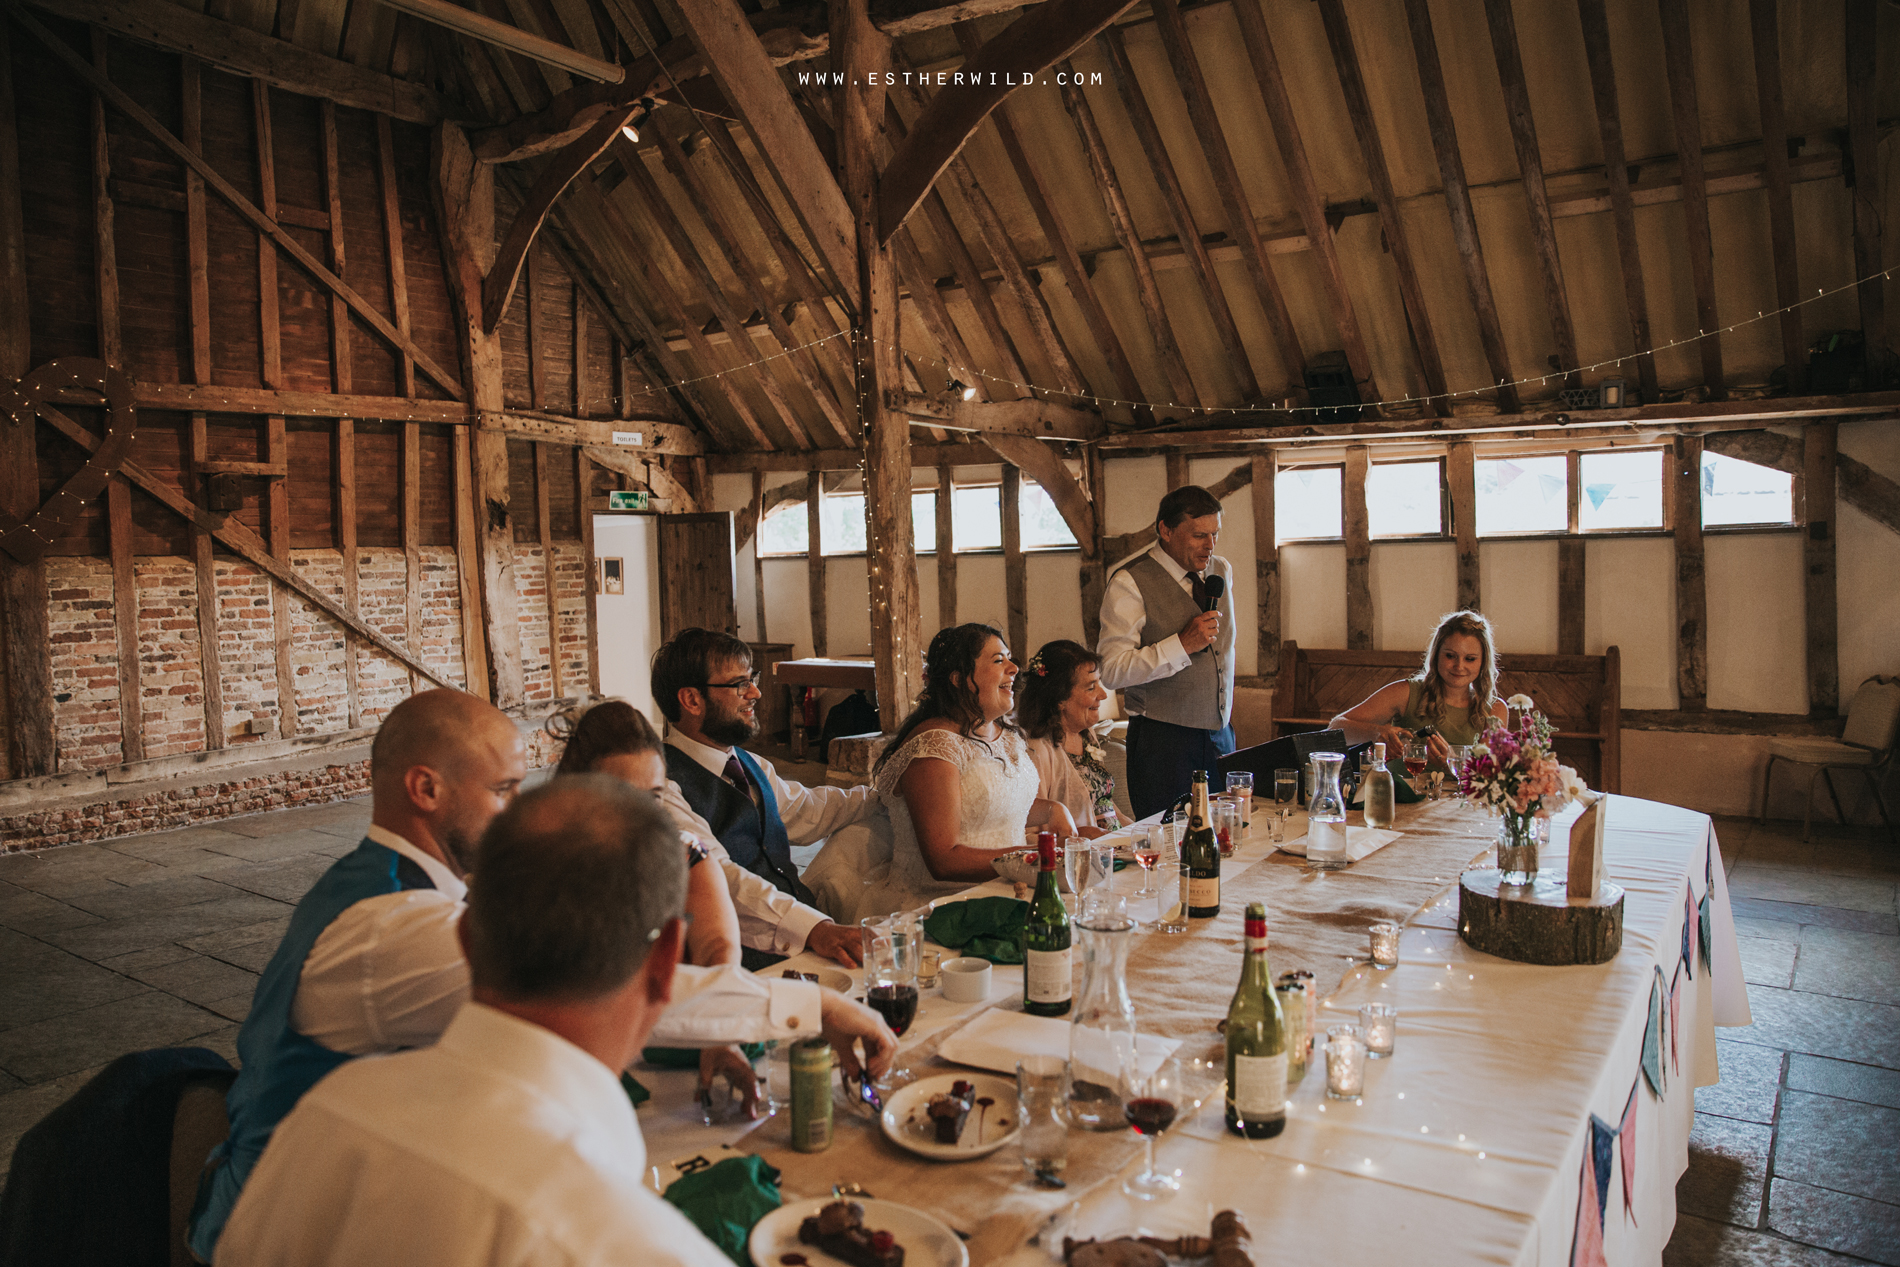 The_Red_Barn_Wedding_Kings_Lynn_Norfolk_IMG_1667.jpg